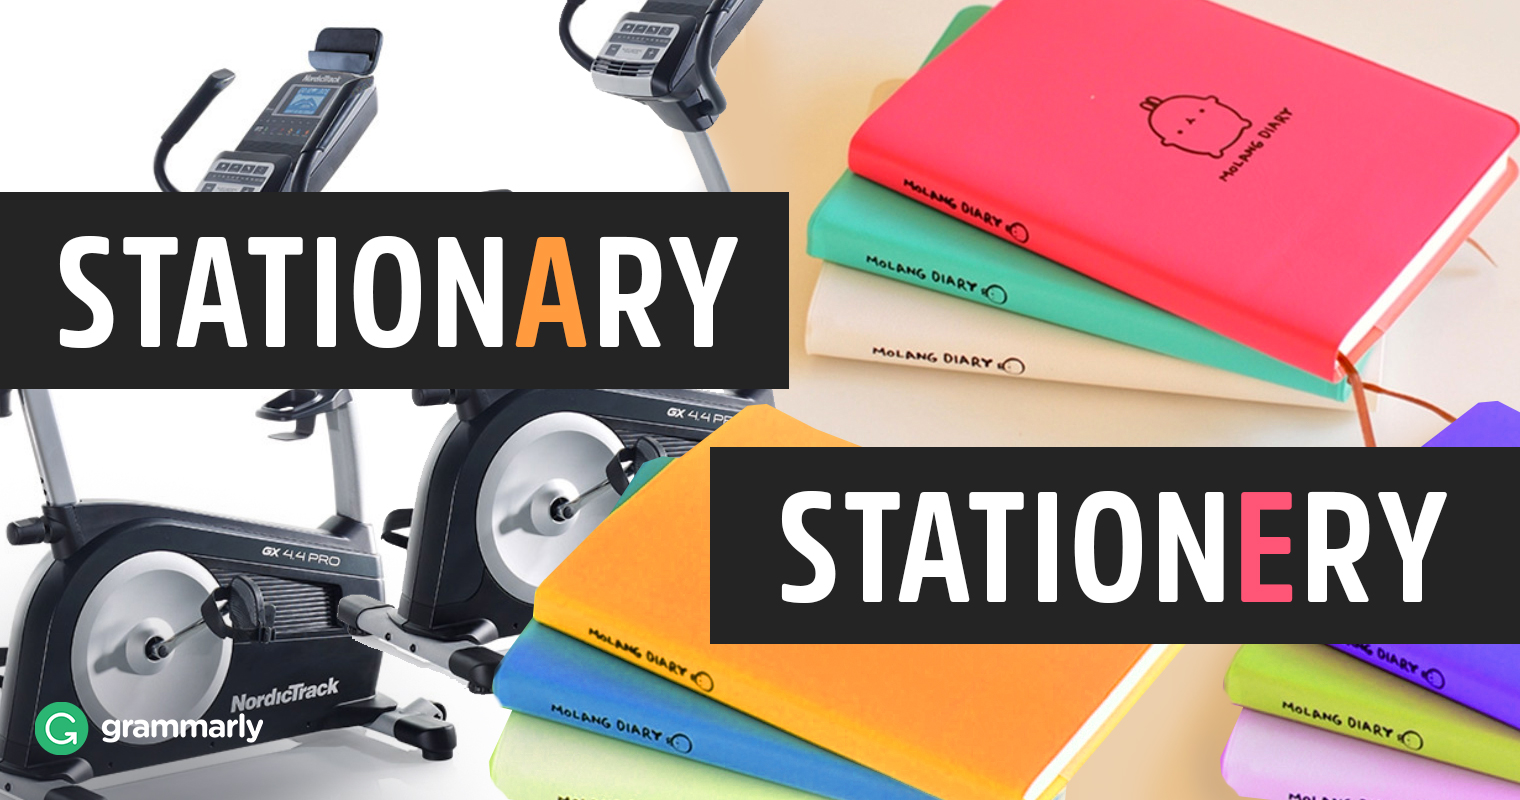 stationary vs stationery what s the difference grammarly